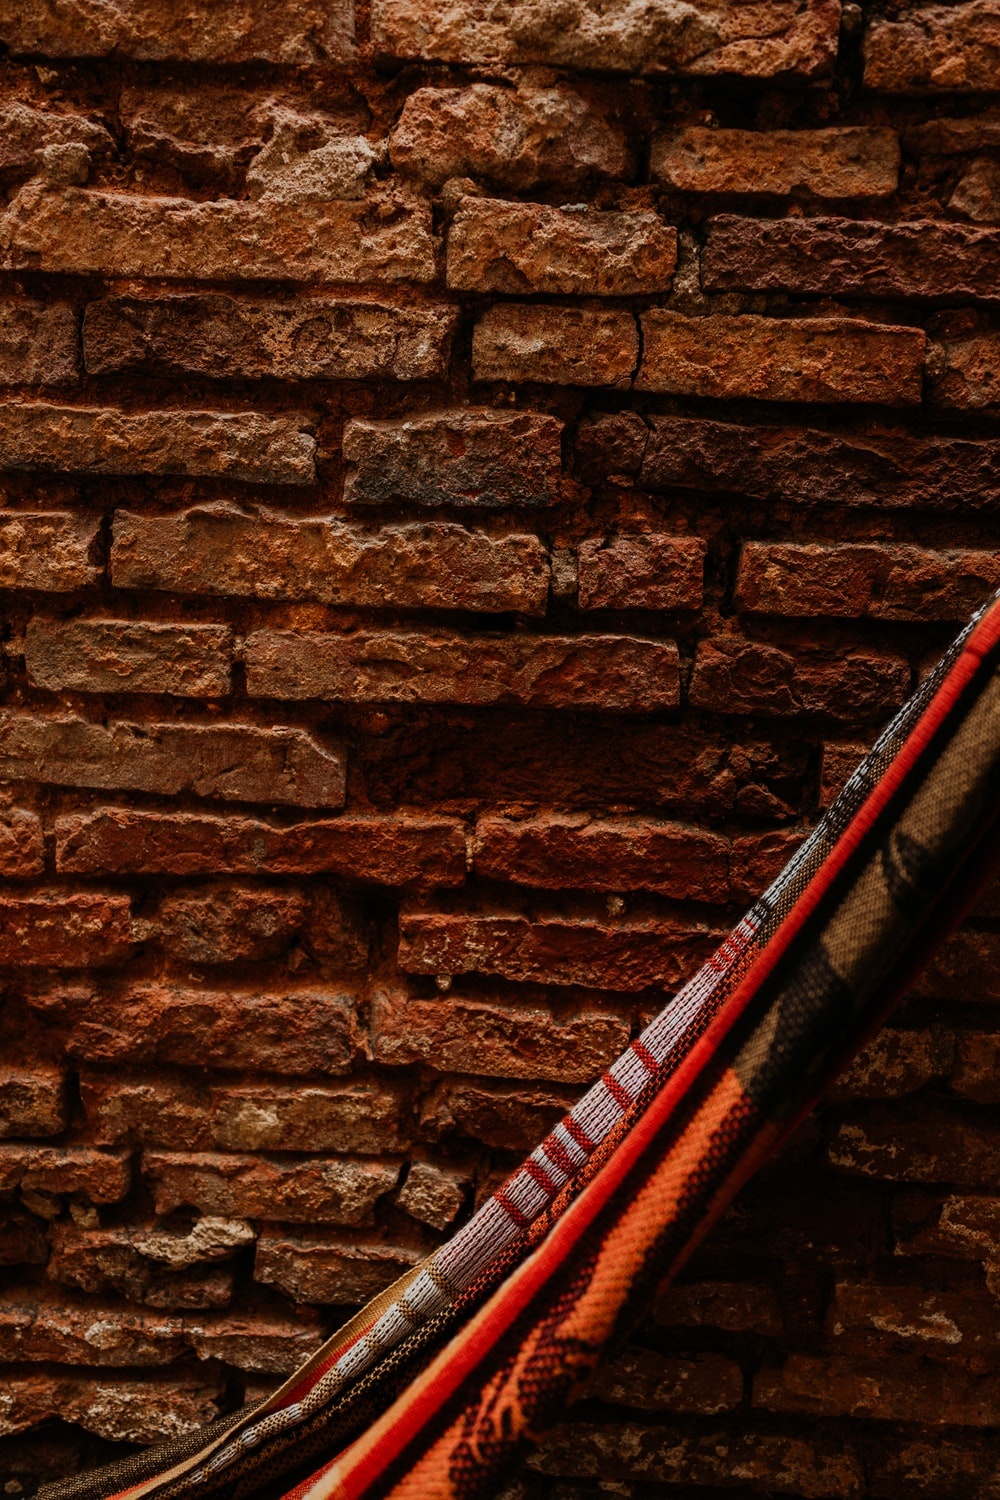 red and black electric guitar leaning on brown brick wall